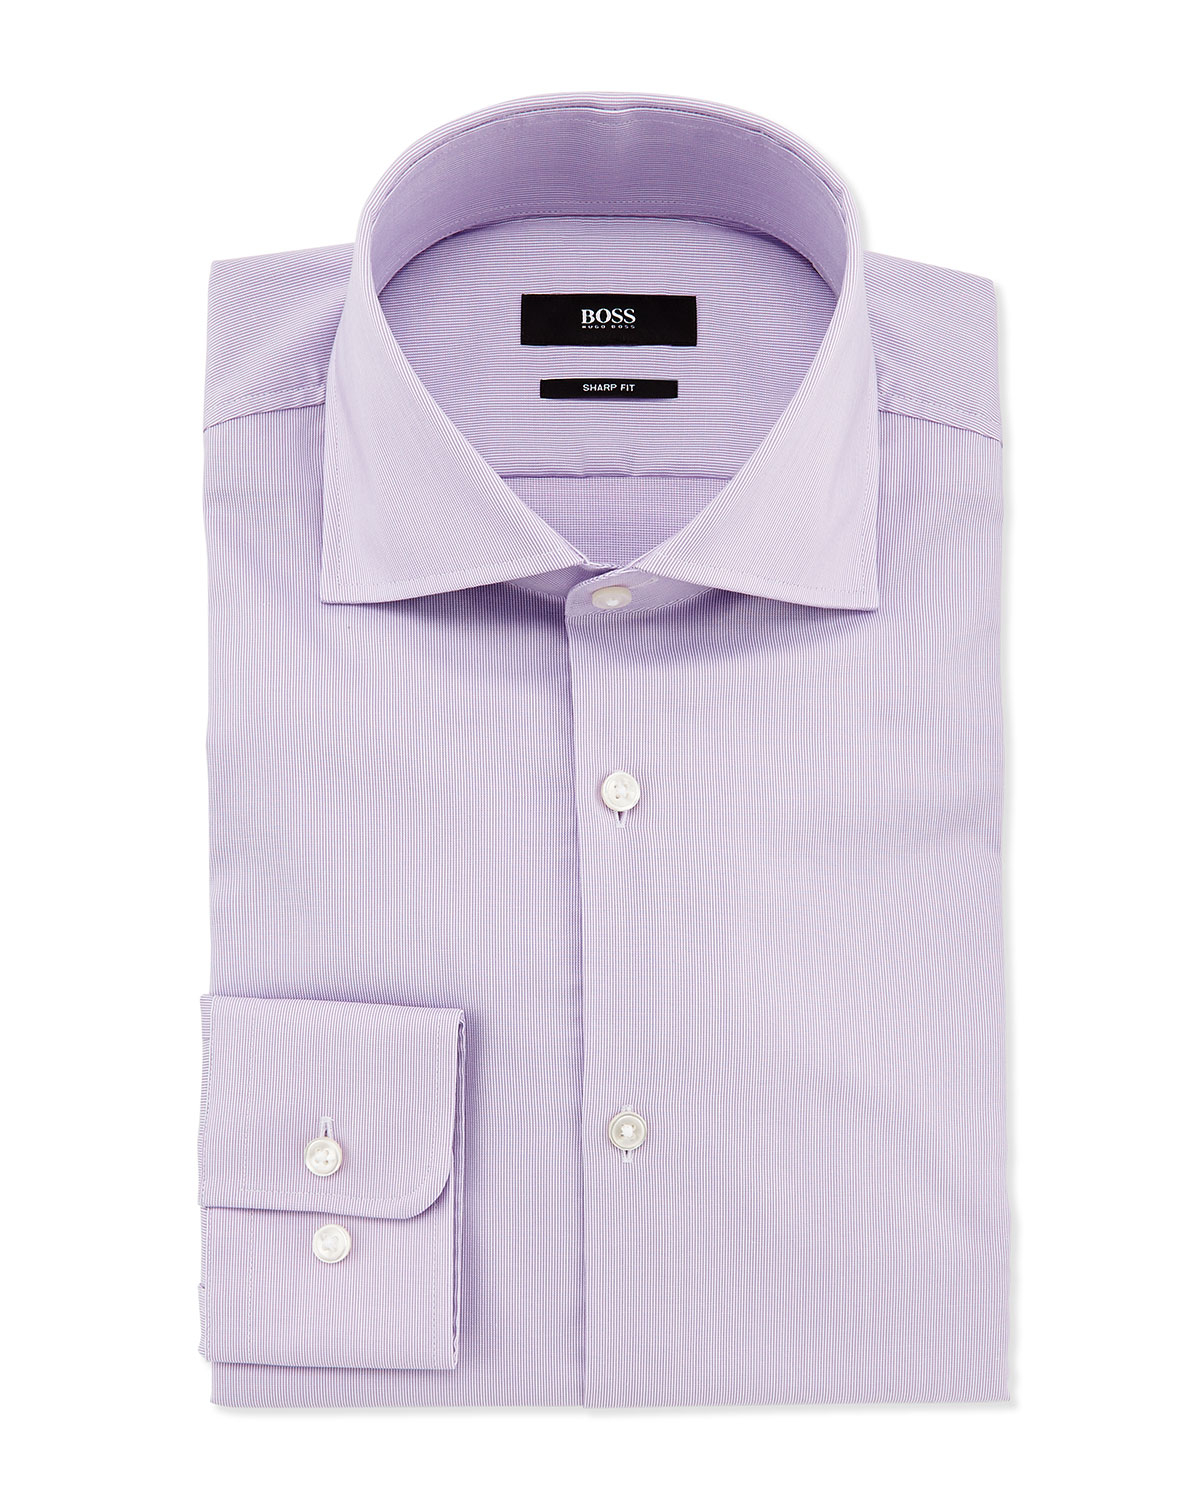 Lyst boss sharp fit miles narrow stripe dress shirt in Light purple dress shirt men